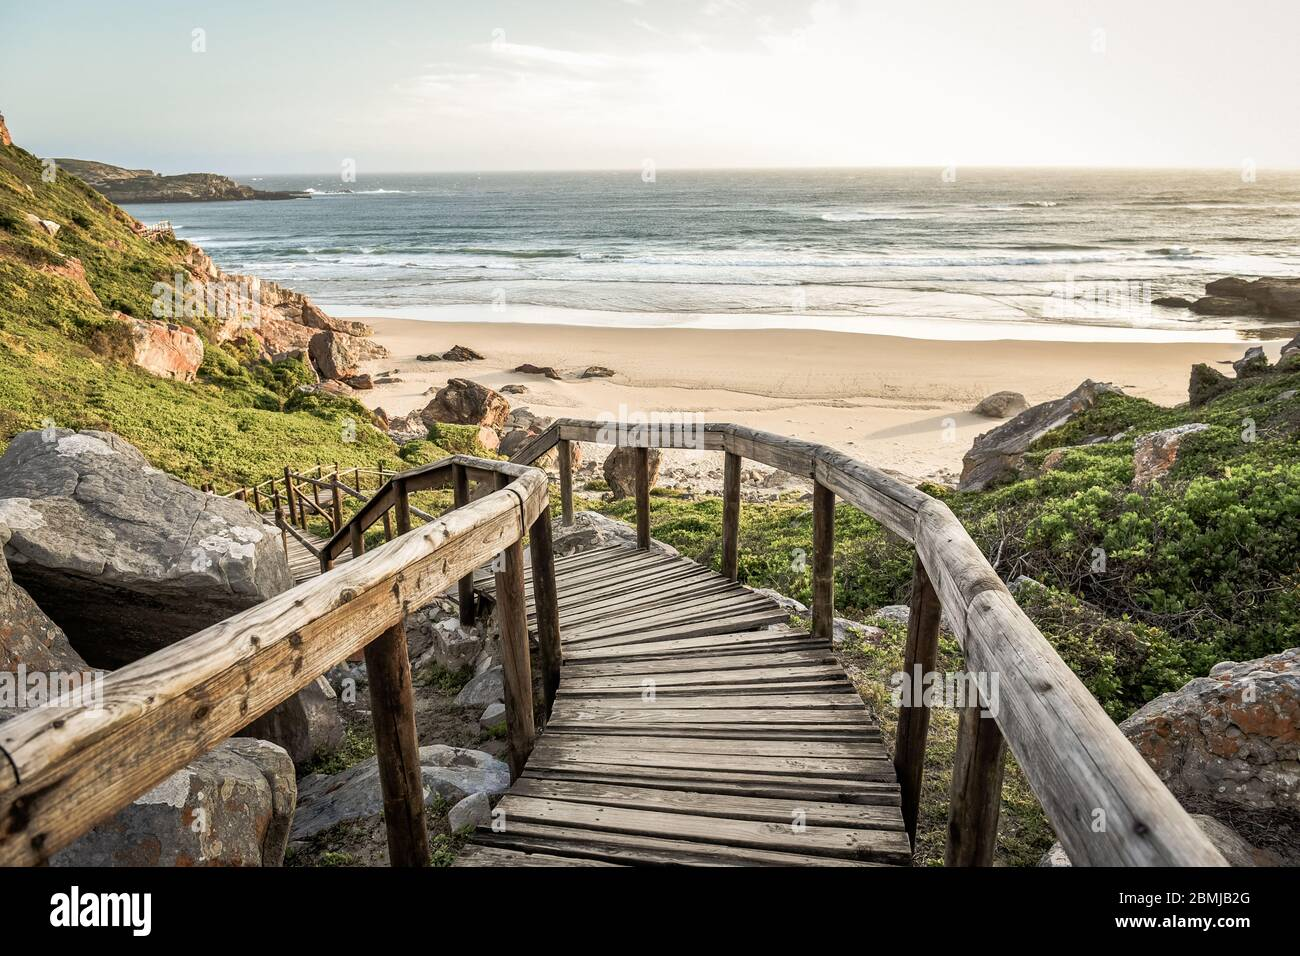 Robberg Nature Reserve, Plettenberg Bay, Garden Route, South Africa Stock Photo